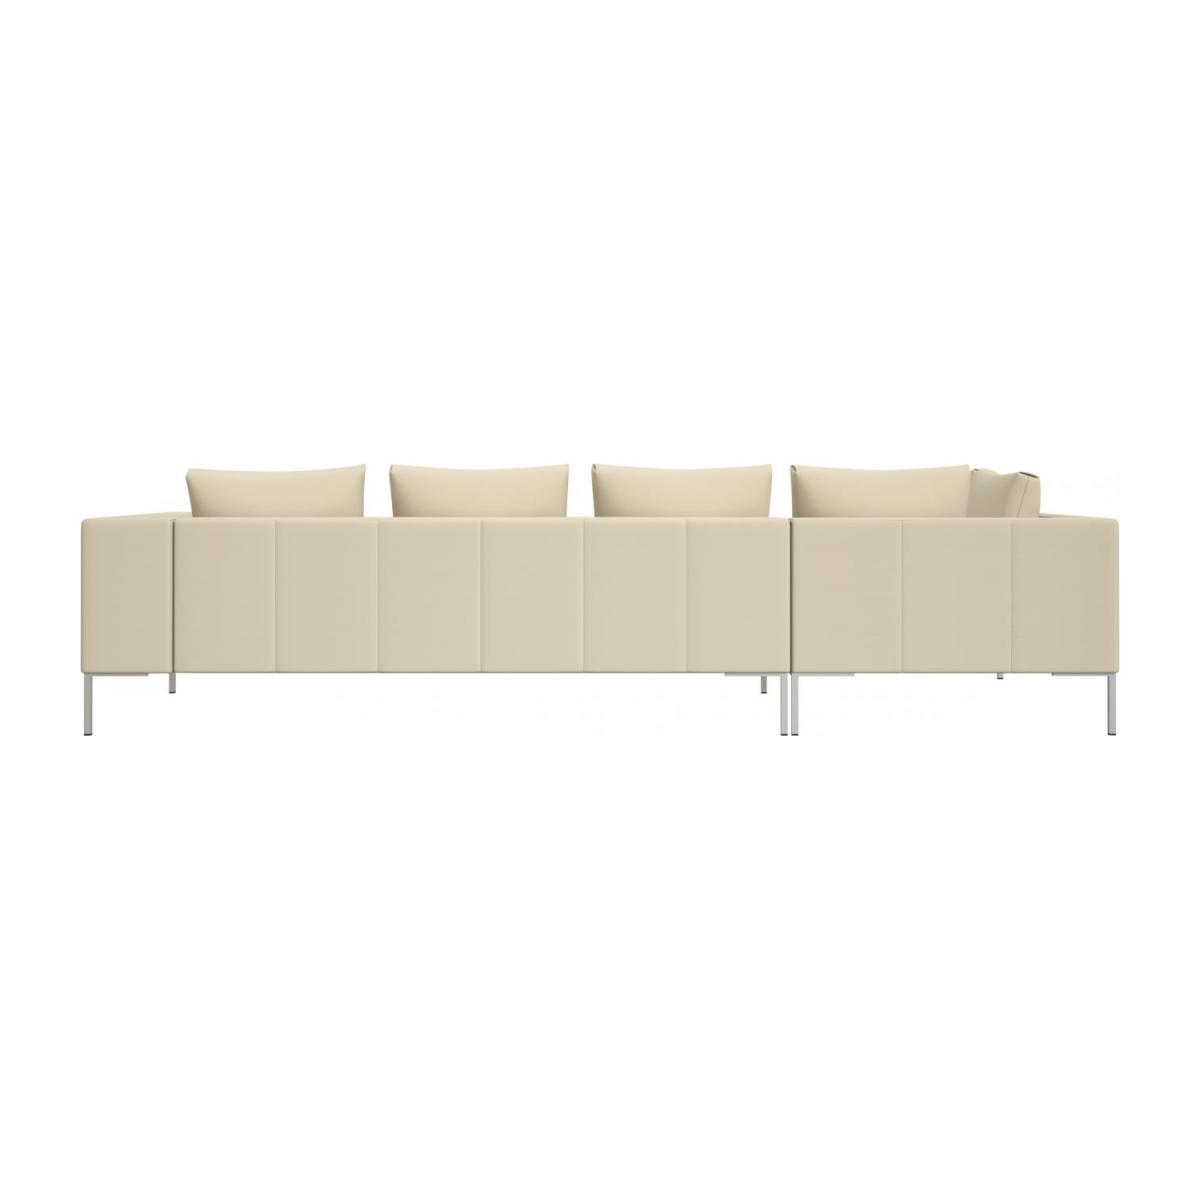 3 seater sofa with chaise longue on the left in Savoy semi-aniline leather, off white  n°3